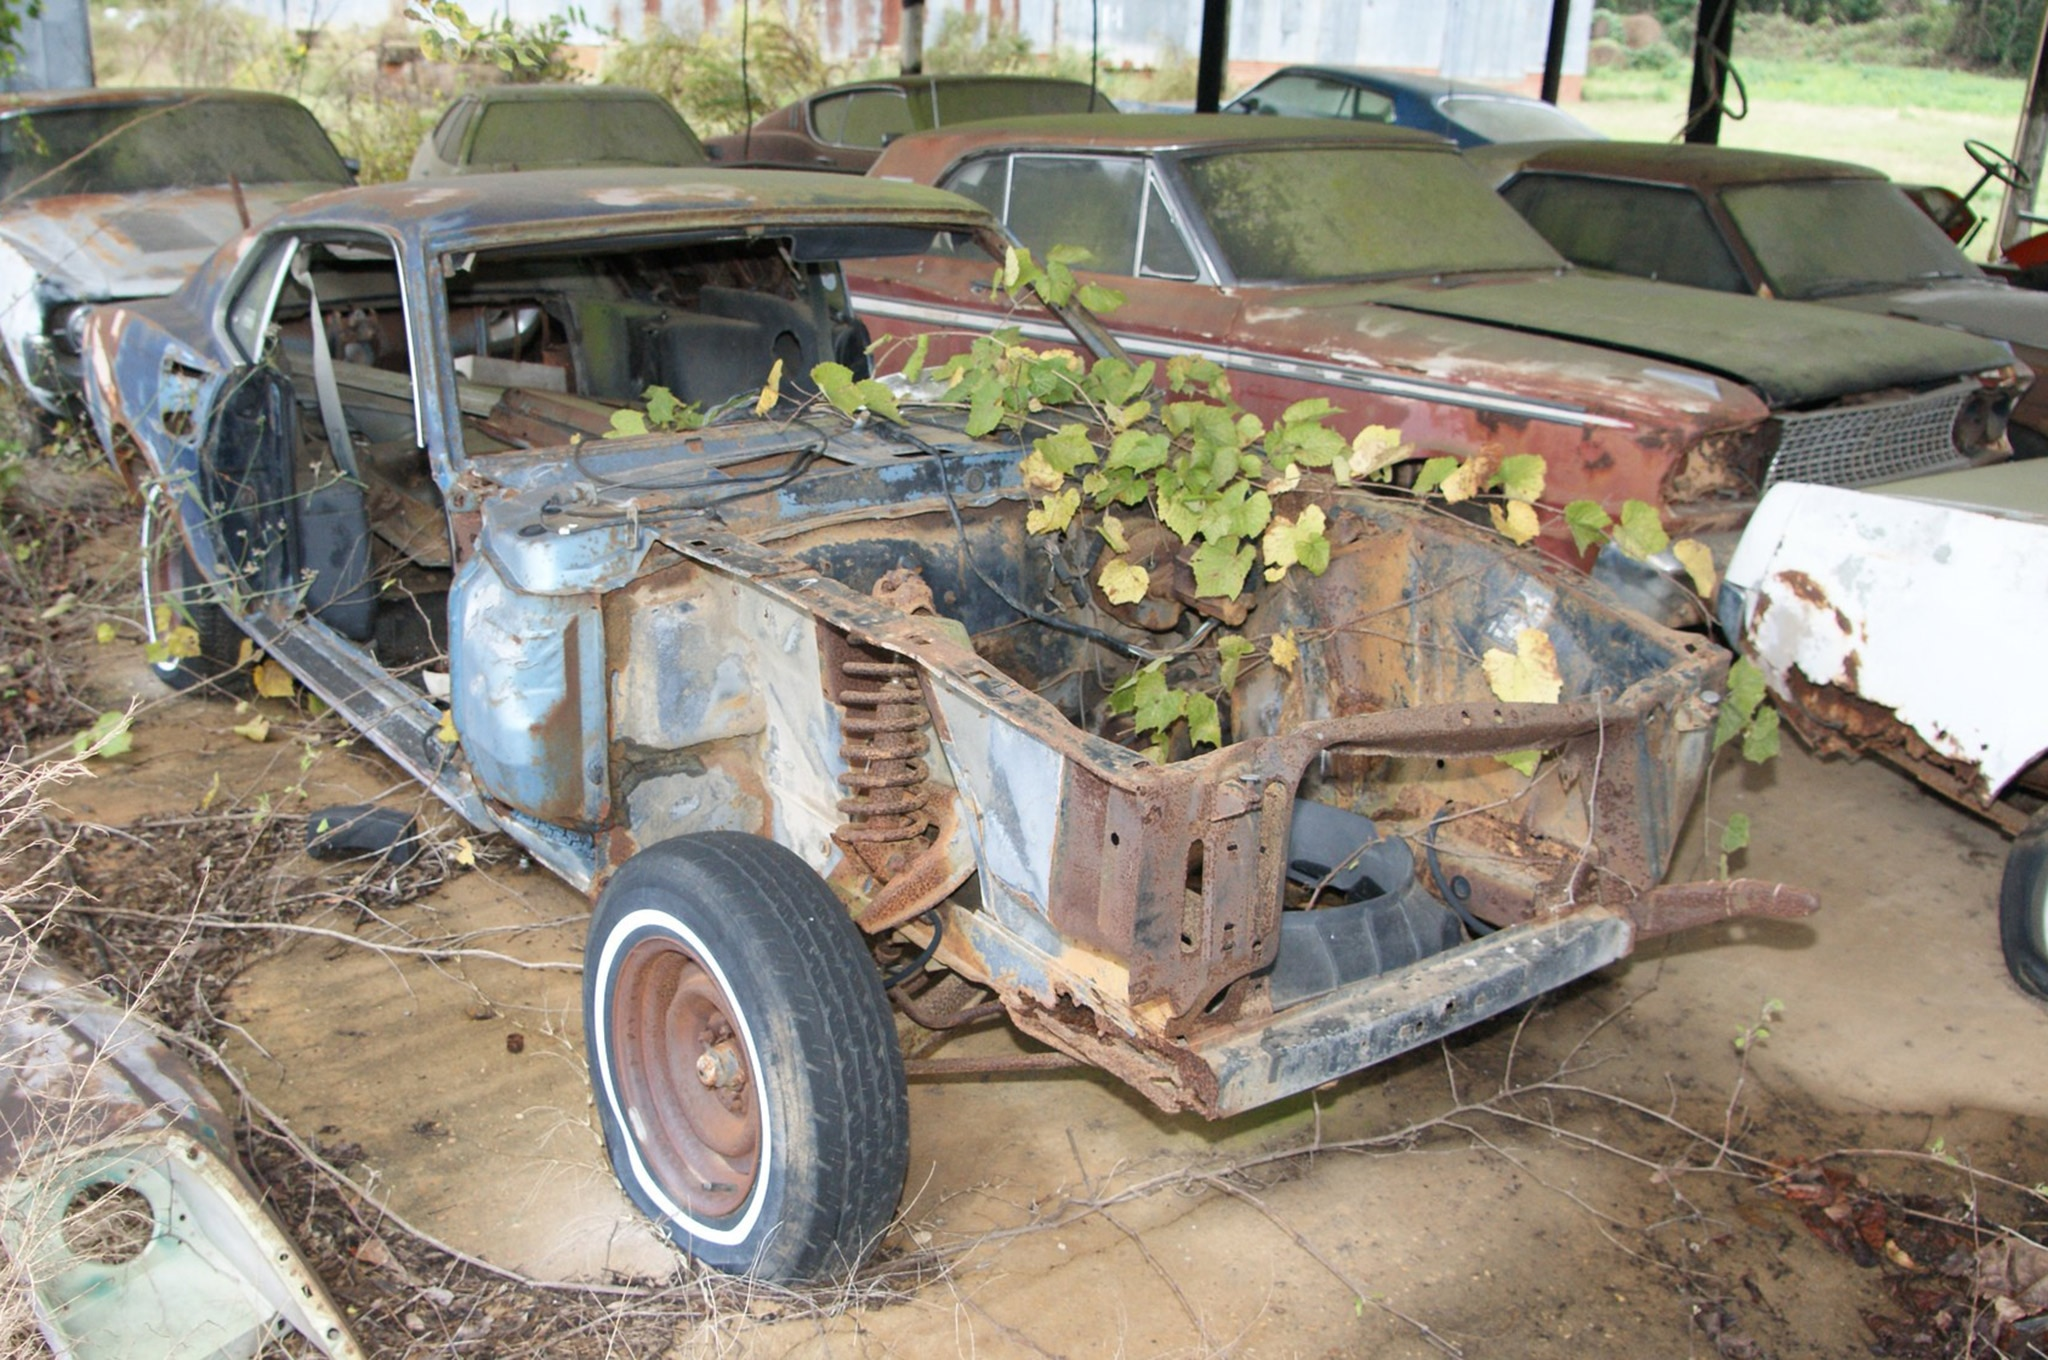 Rare Field Finds Fords Mustangs Trucks Parts 23